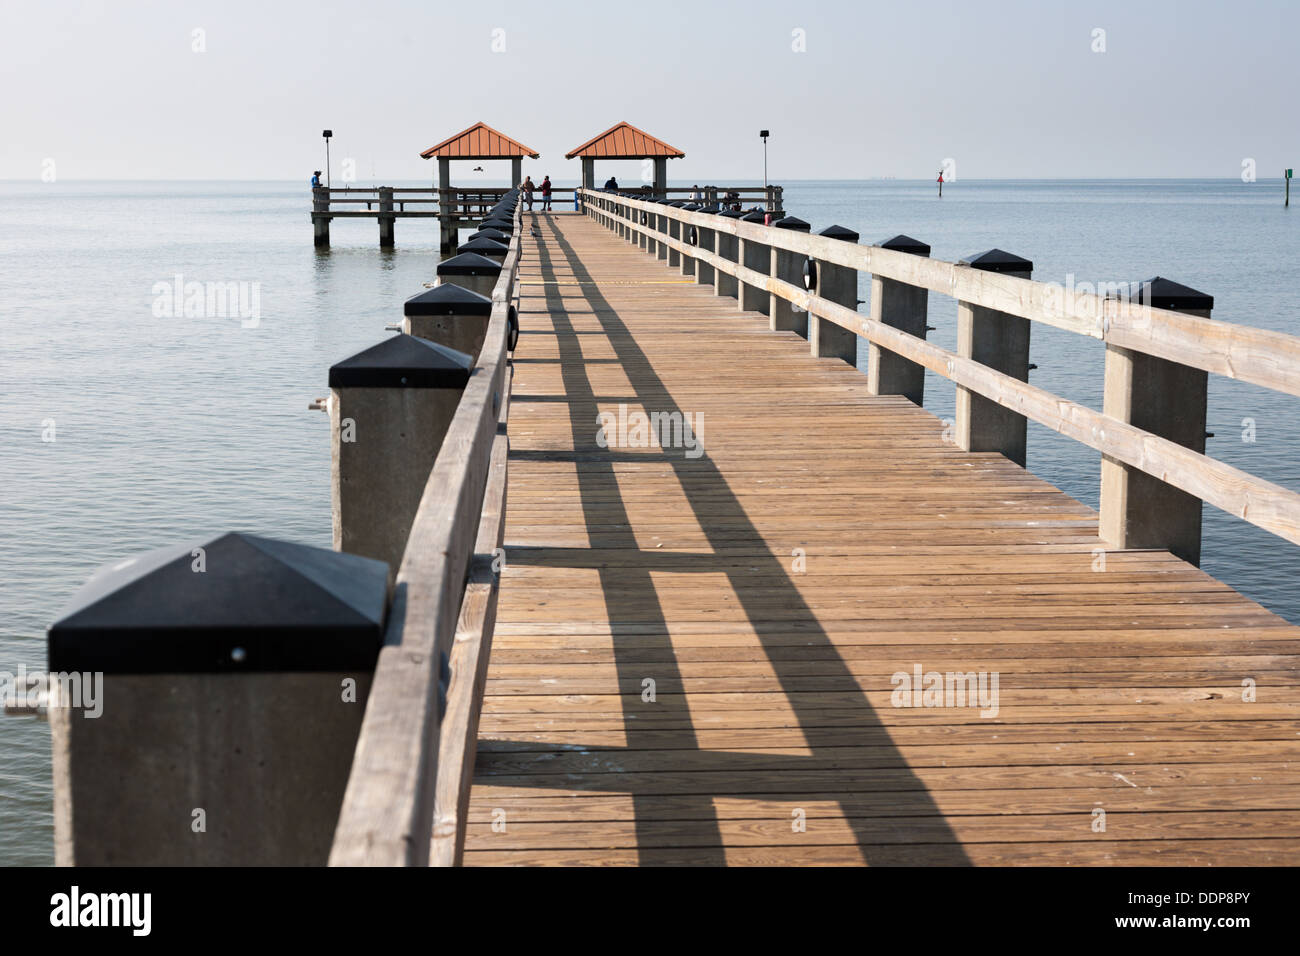 ken combs fishing pier in gulf of mexico at courthouse